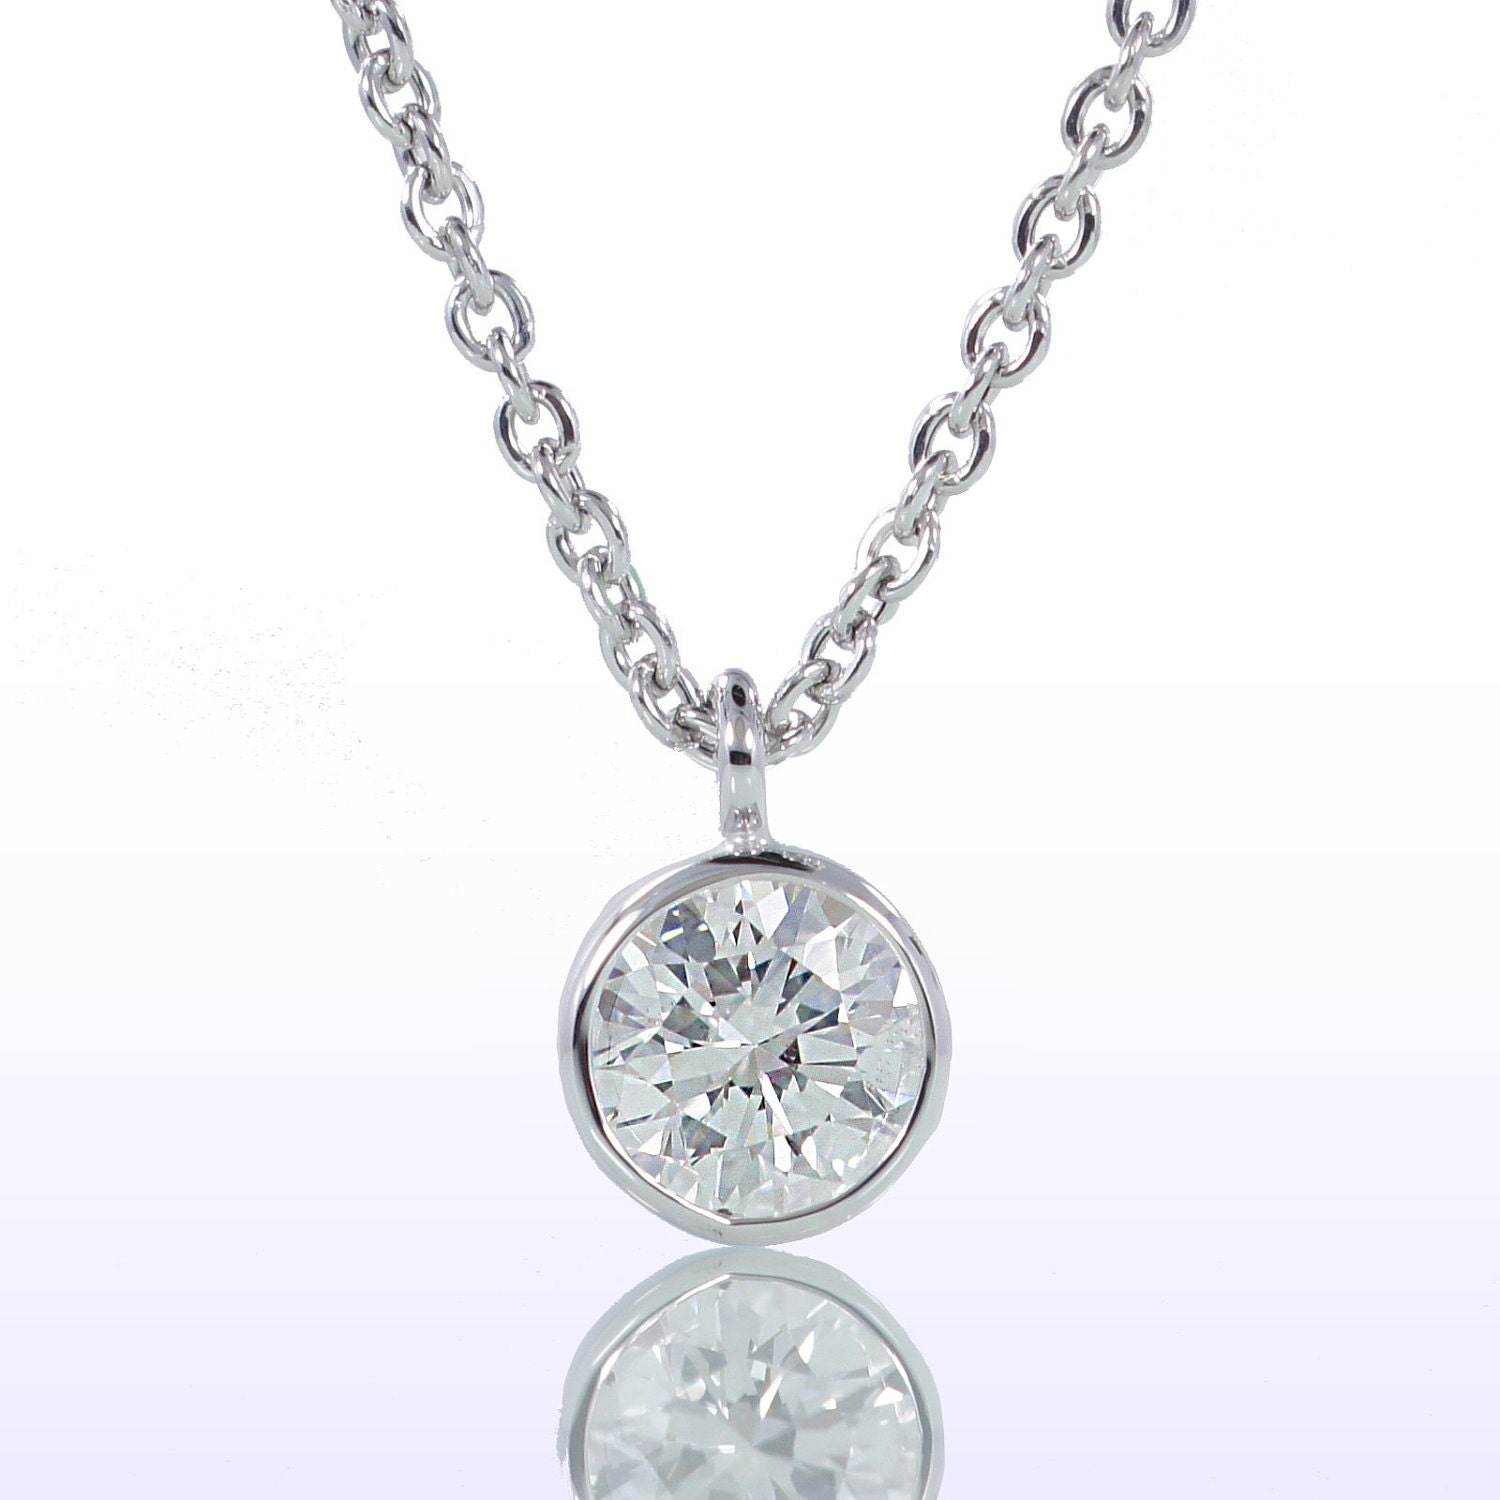 classic bezel set diamond solitaire pendant necklace. Black Bedroom Furniture Sets. Home Design Ideas